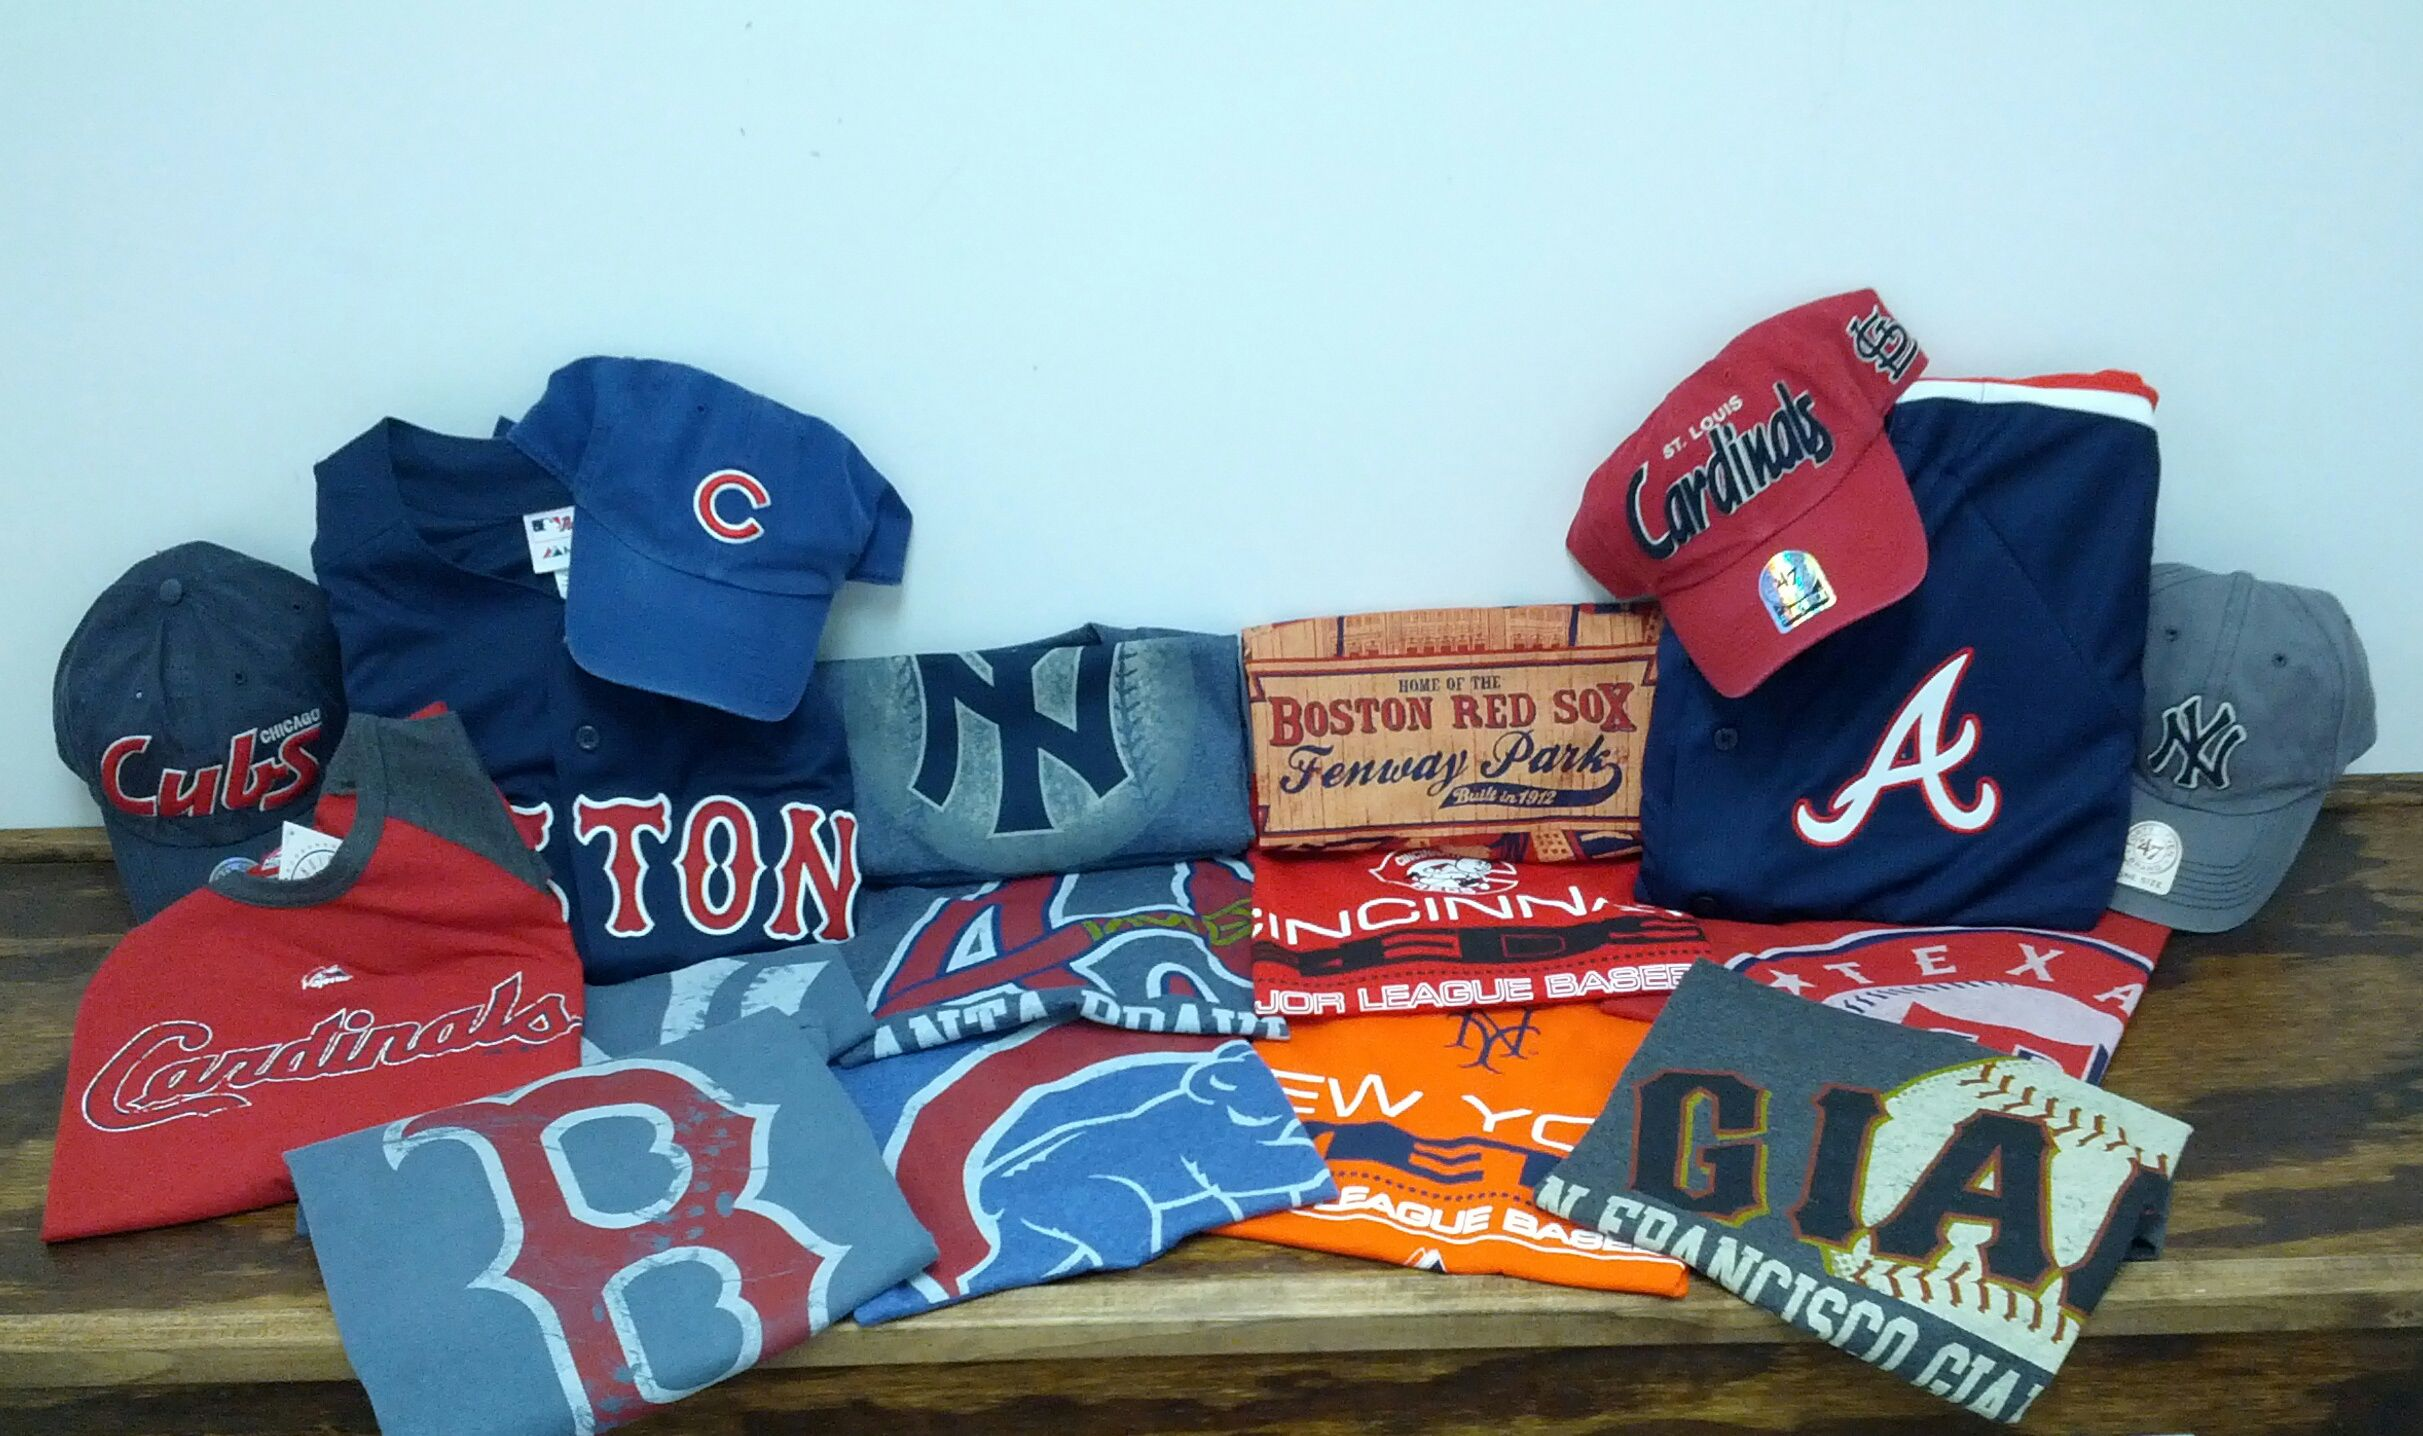 Mlb Gear Is Now In Yesterday Was Opening Day We Ve Got T Shirts Jerseys And Hats To Most Of Your Favorite Mlb Teams Now Ava Mlb Teams Team Apparel Opening Day